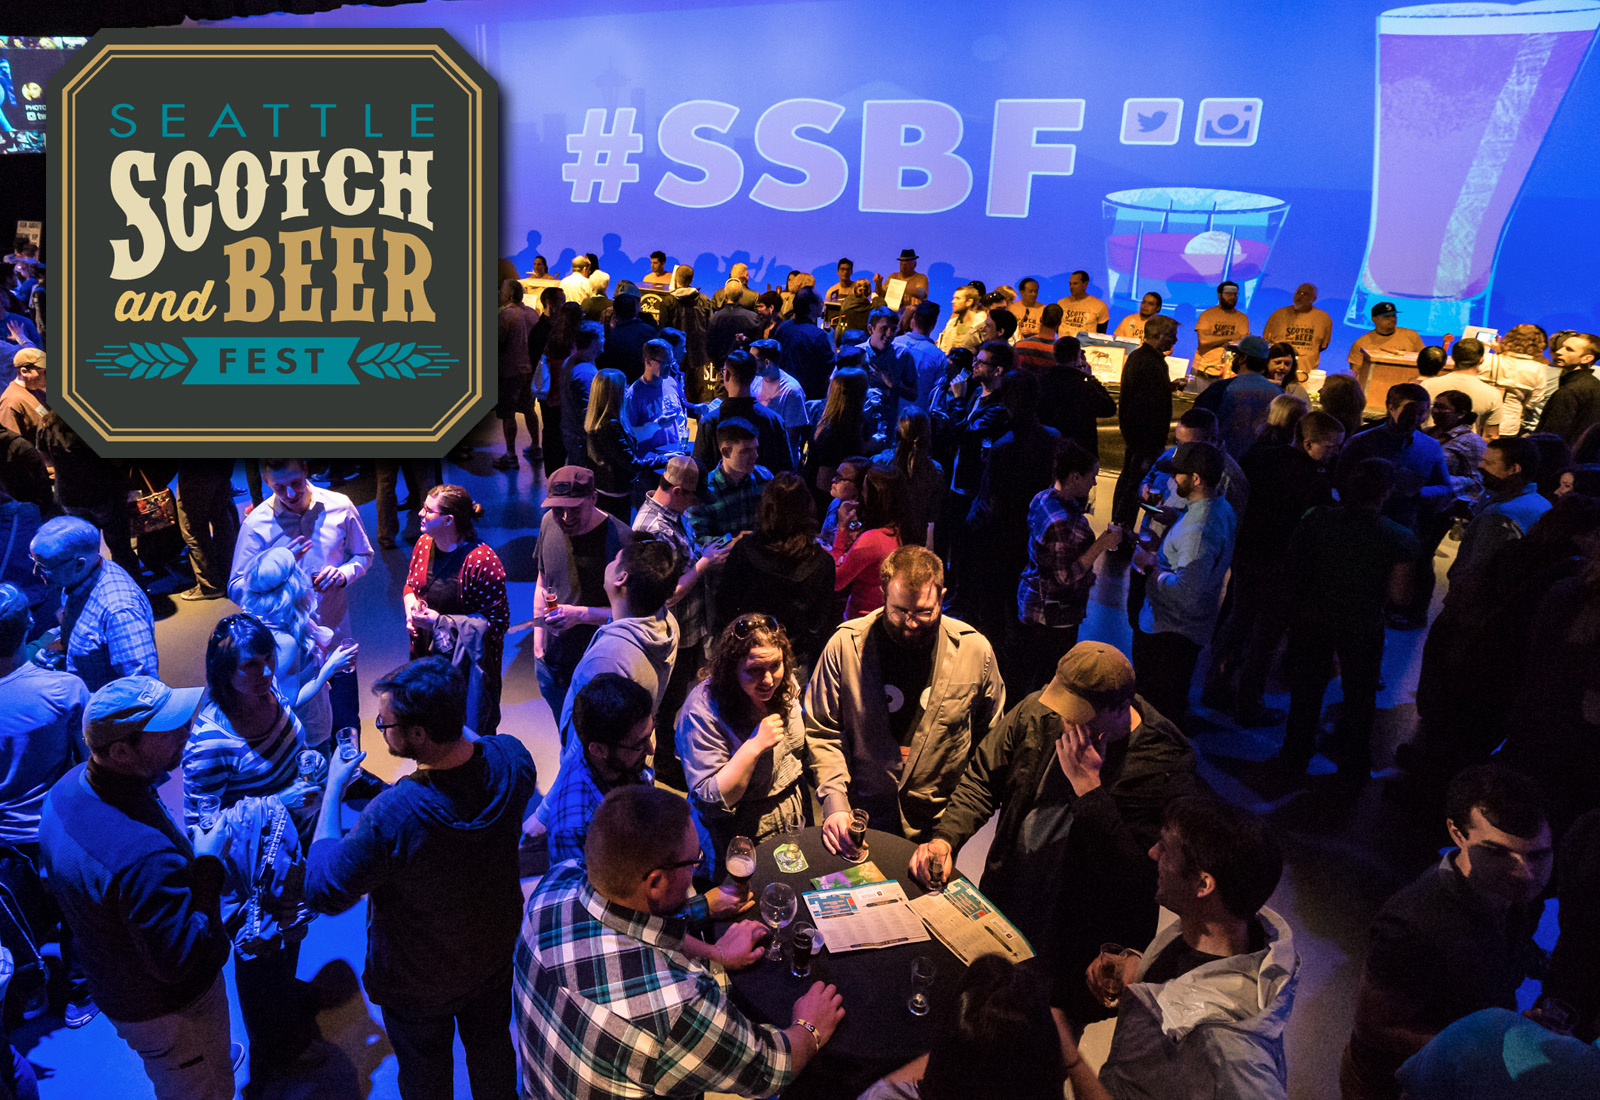 Scotch and Beer Fest Seattle